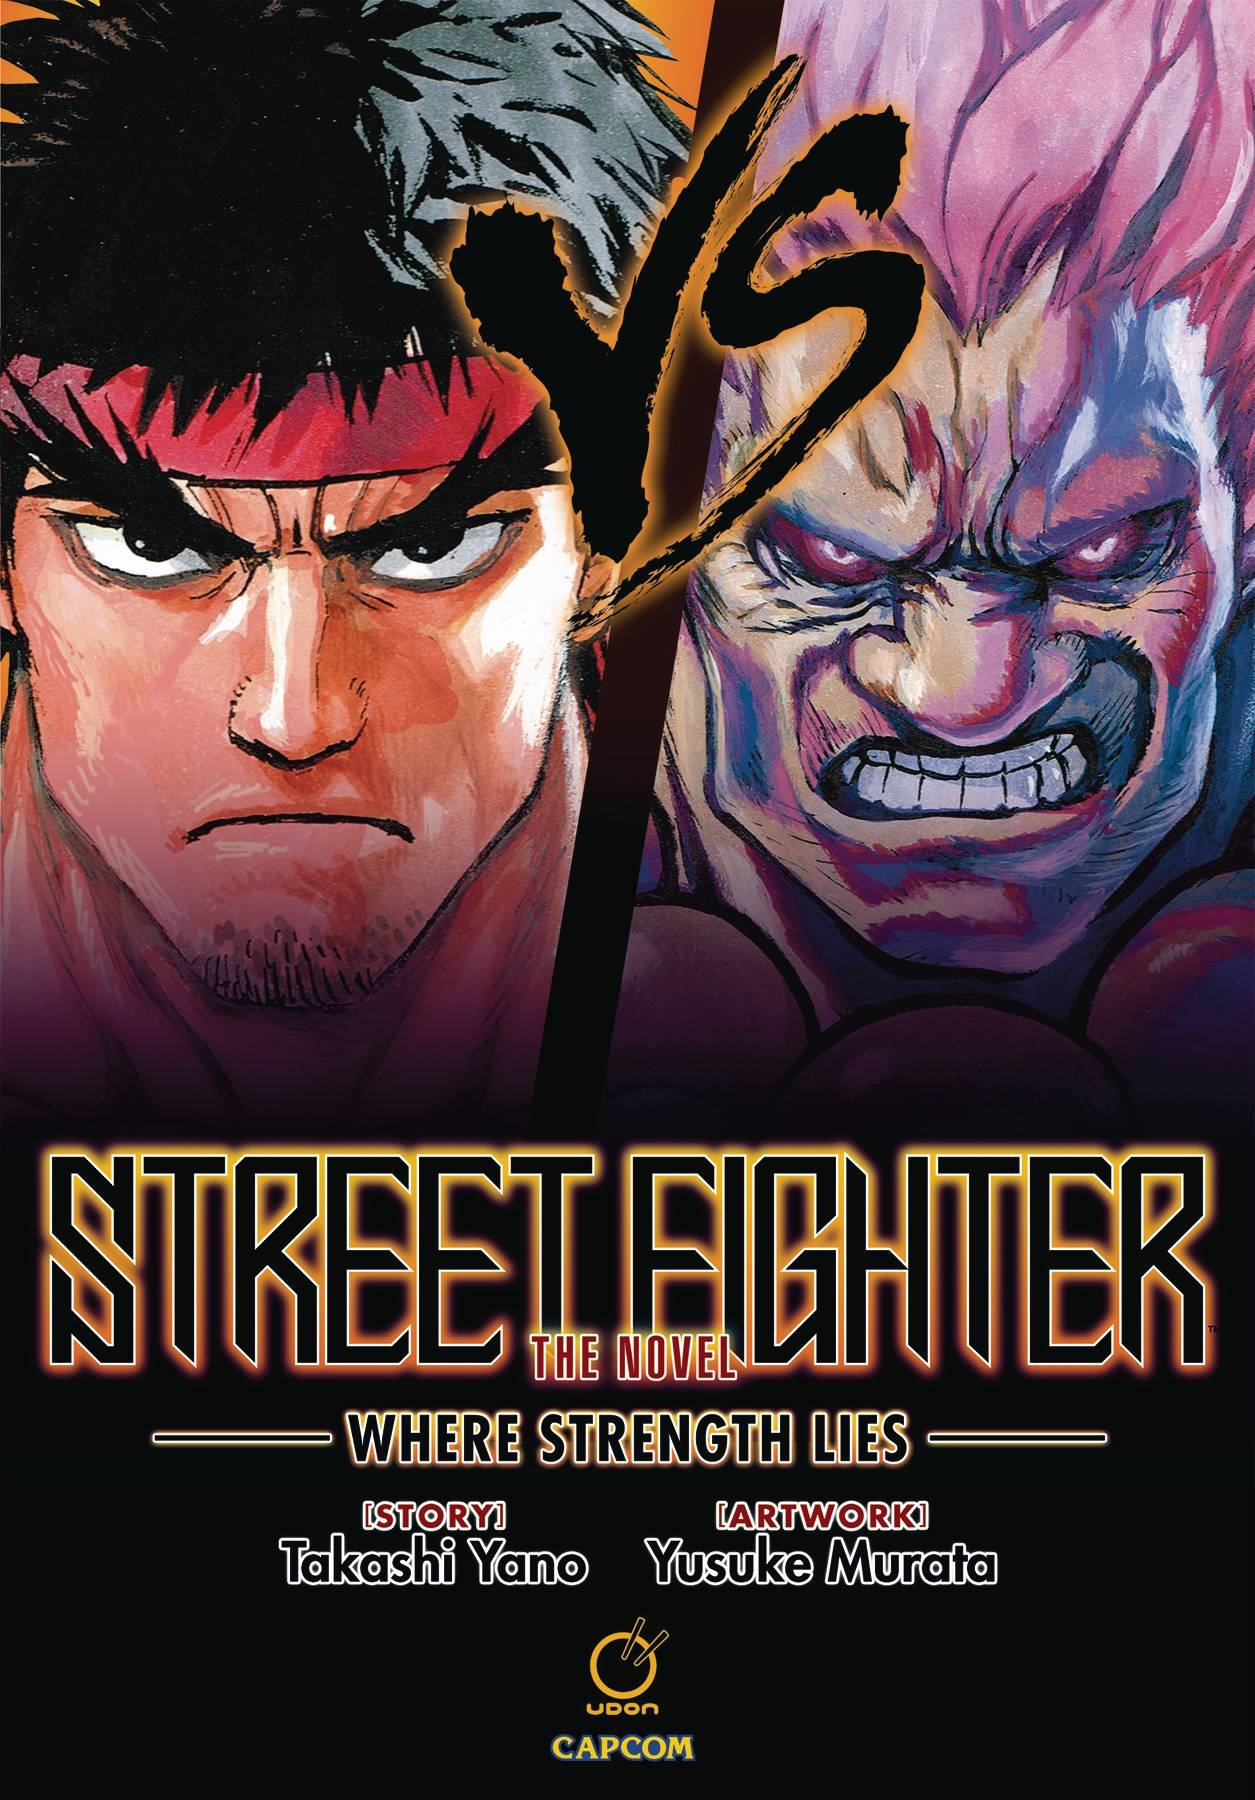 Image OfStreet Fighter: The Novel: Where Strength Lies